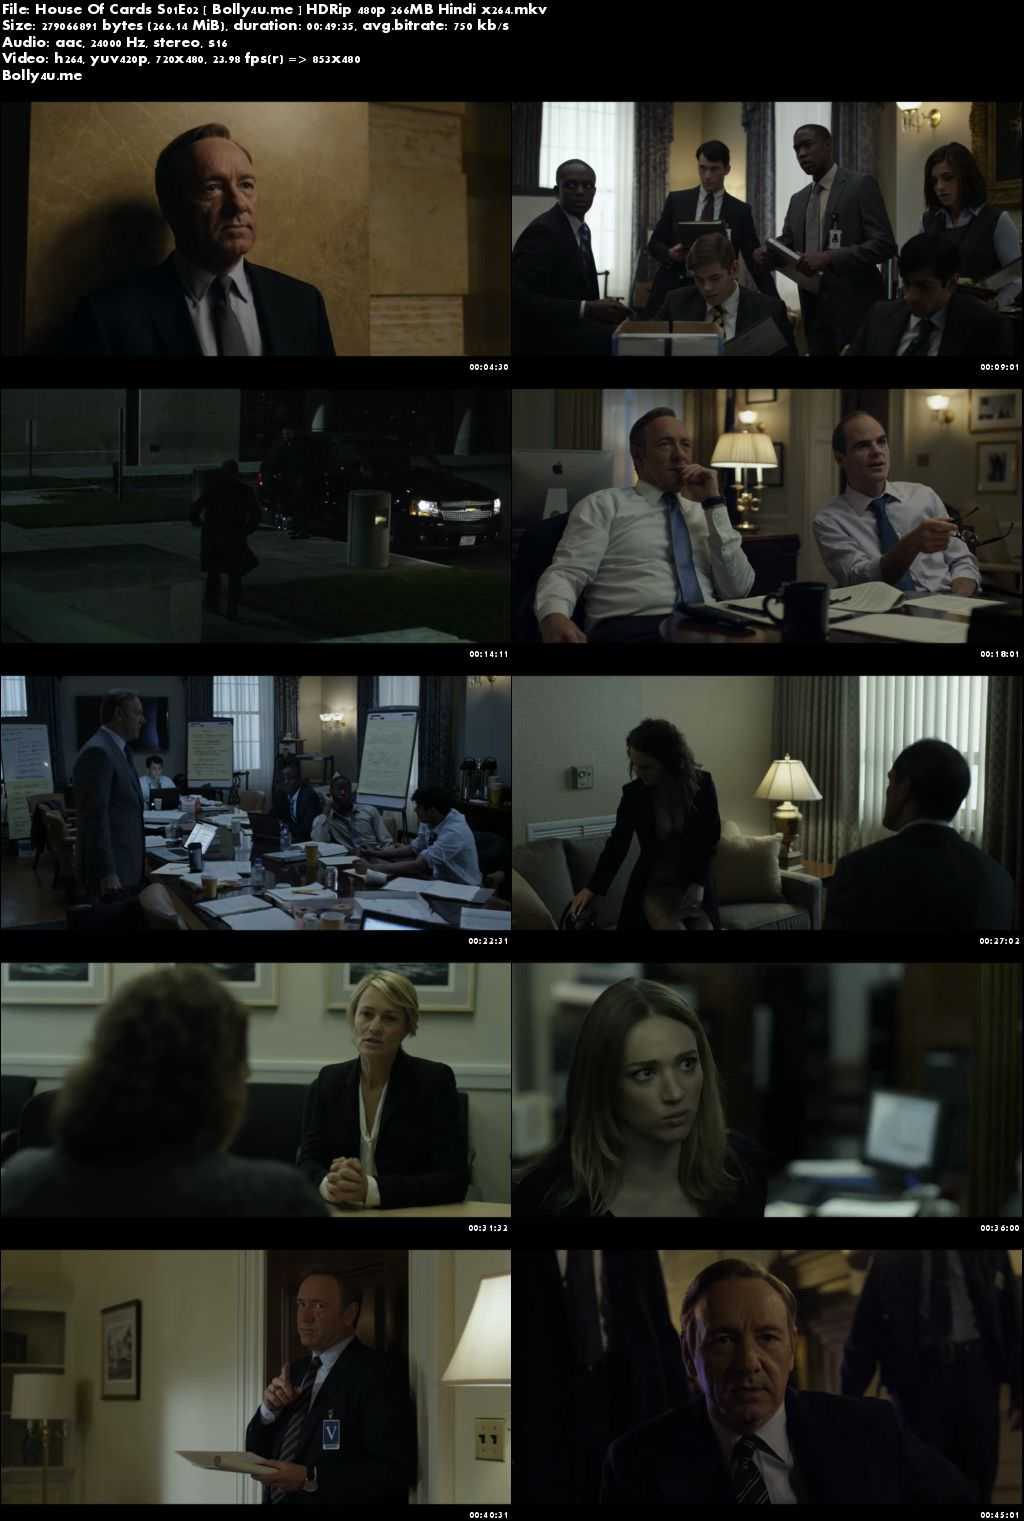 House Of Cards S01E02 HDRip 250MB Hindi Dubbed 480p Download